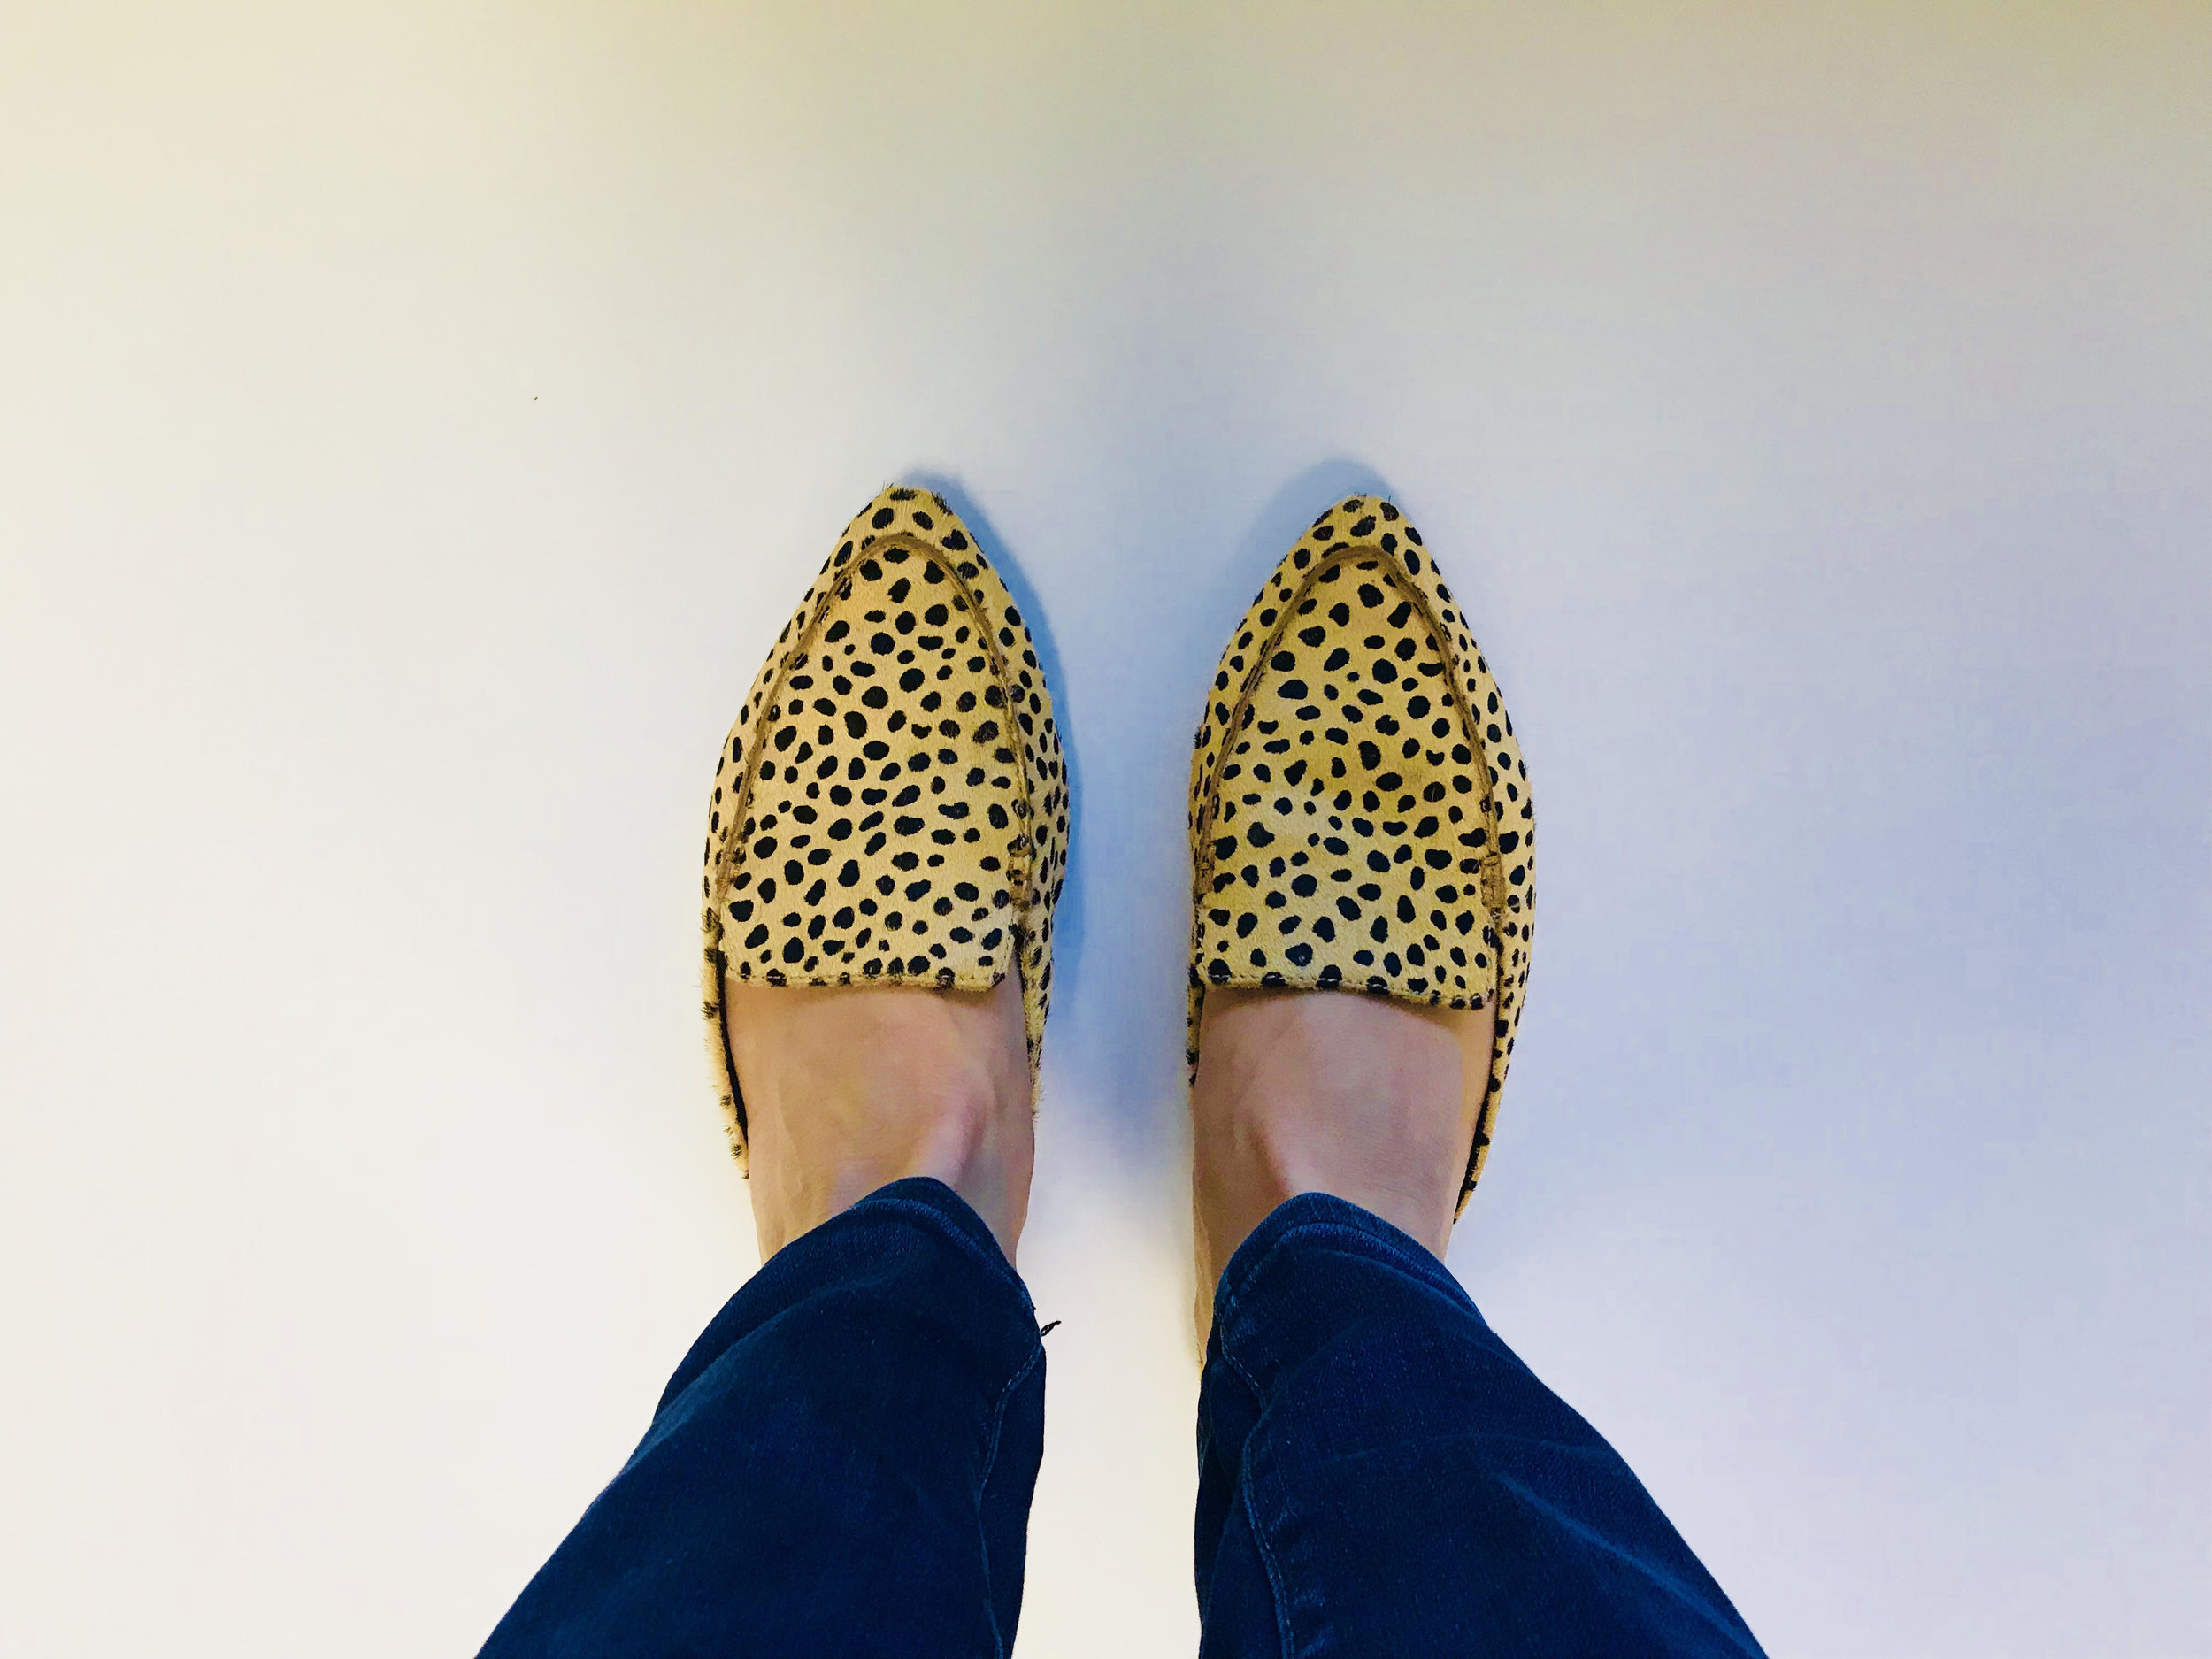 1. Cheetah Mules - My latest Second Chance Consignment Shop find. These were originally $10 & I used a 20% off coupon I got from their email. Sign up for their email list on their website for monthly coupons!Price: $8Second Chance Consignment Shop